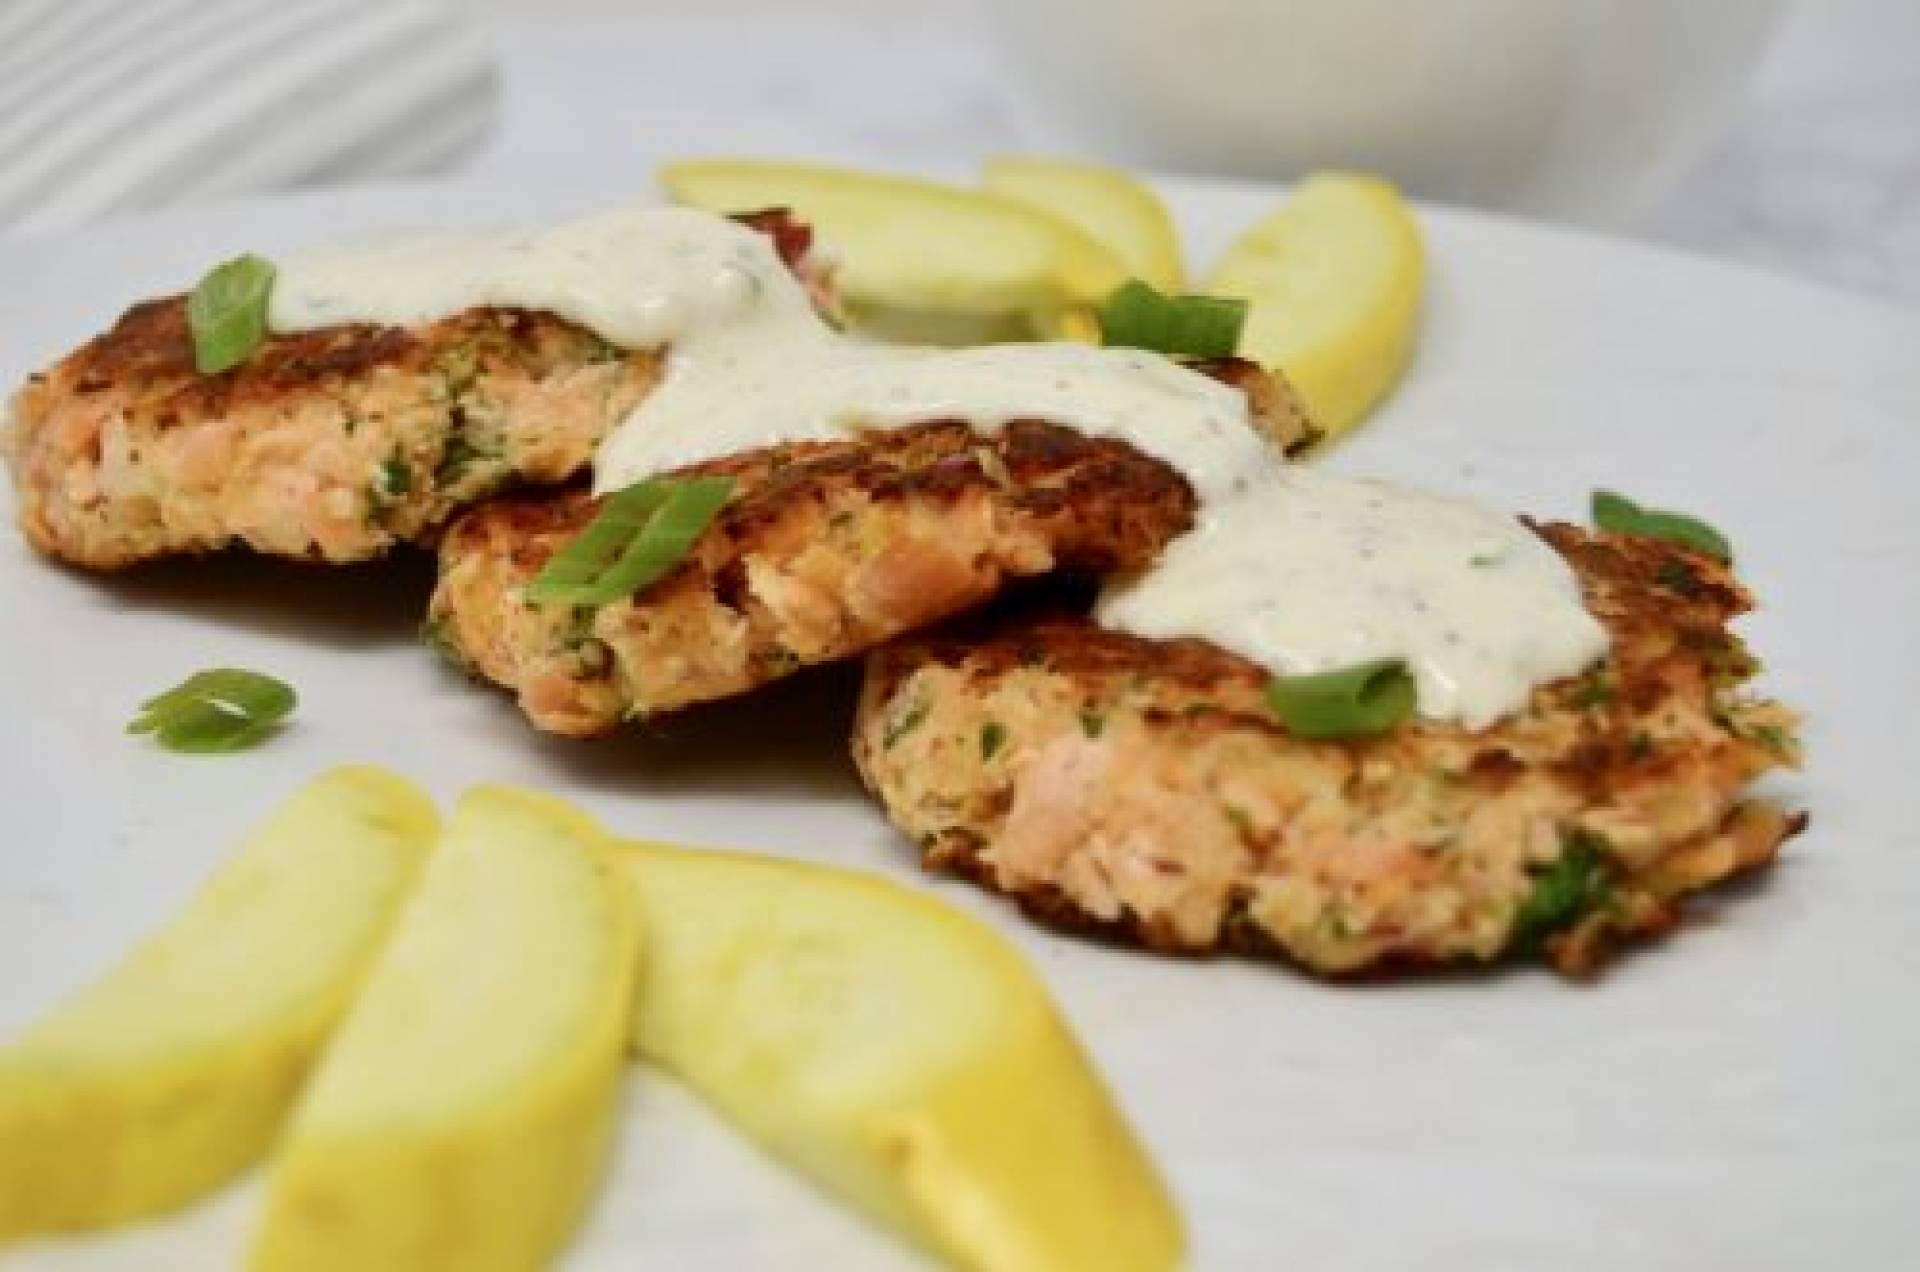 Salmon Cakes with Garlic Aoli Sauce